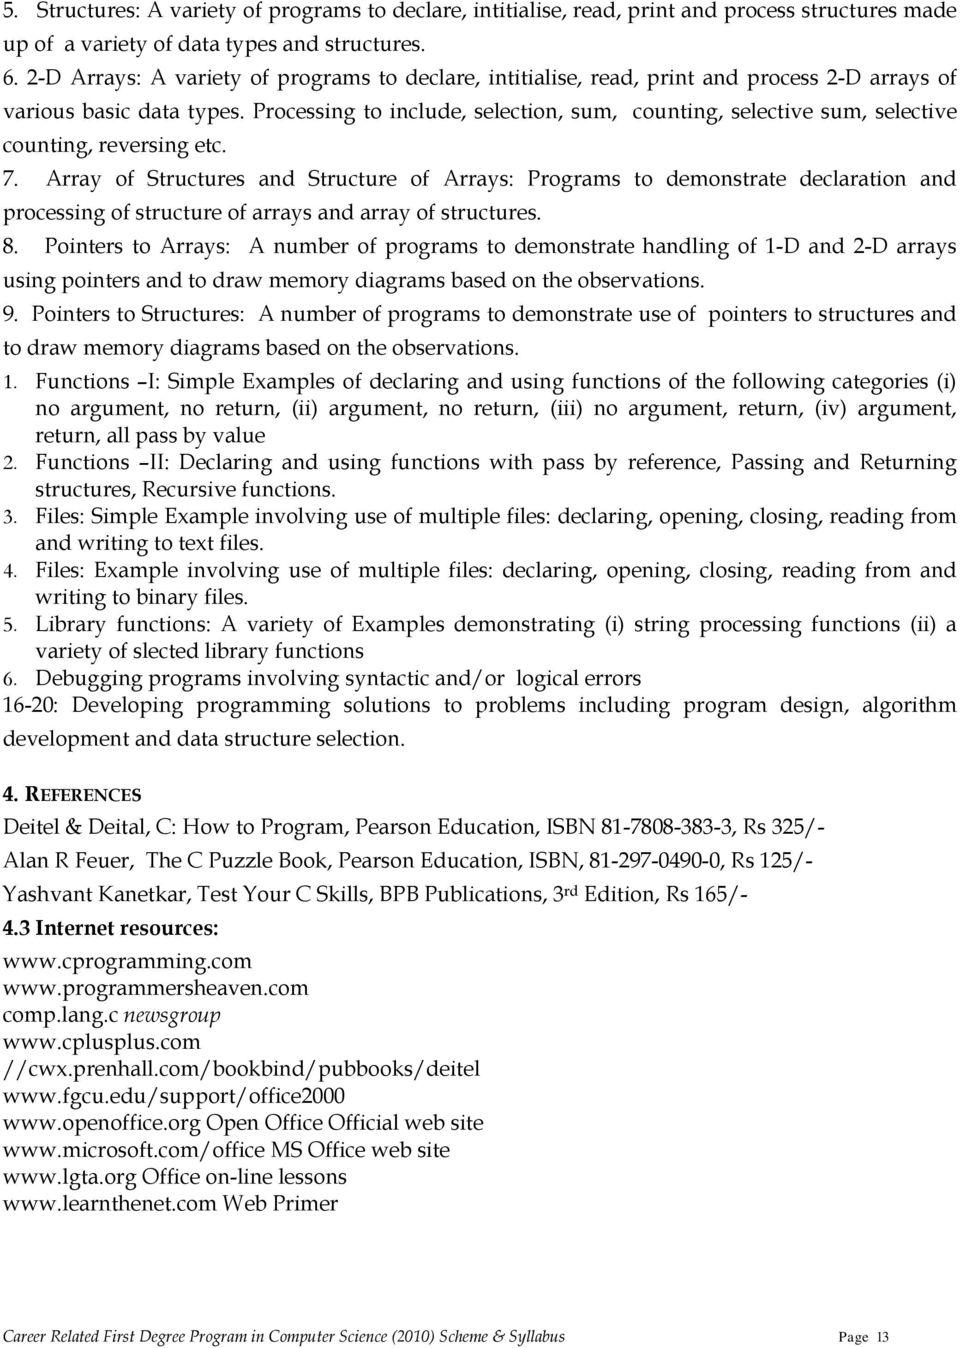 Career related first degree programme in computer science scheme processing to include selection sum counting selective sum selective counting fandeluxe Image collections